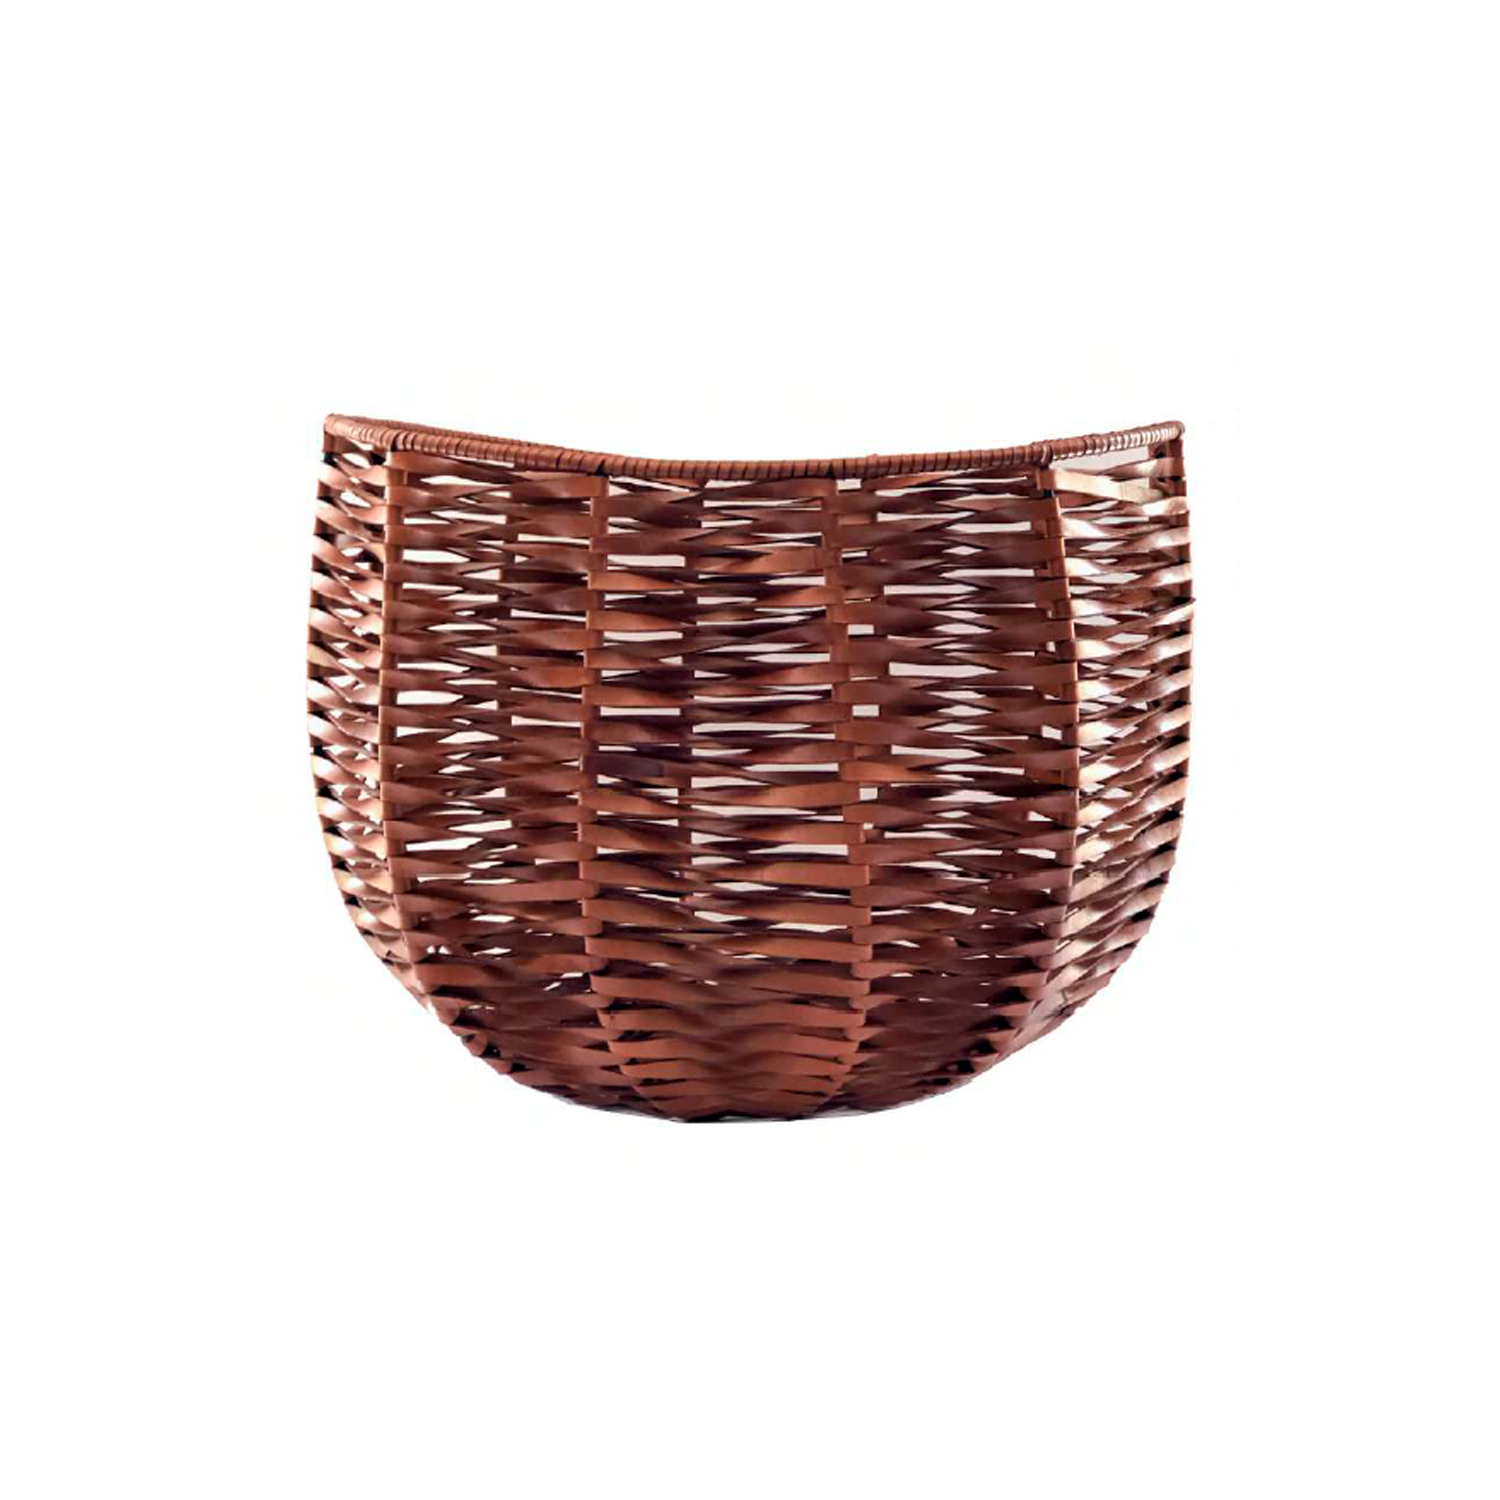 Vietnam Woven Leather Basket - Vietnam Woven Leather Basket is designed to complement an ambient with natural and sophisticated feeling, ideal when placed next your sofa or bed, perfect for magazines and throws storage. Elisa Atheniense woven leather pieces, are handmade and manufactured in Brazil using an exclusive treated leather that brings the soft feel and touch to every single piece.  Bespoke sizes are also available under project request as well as colours, see colour chart for reference. | Matter of Stuff